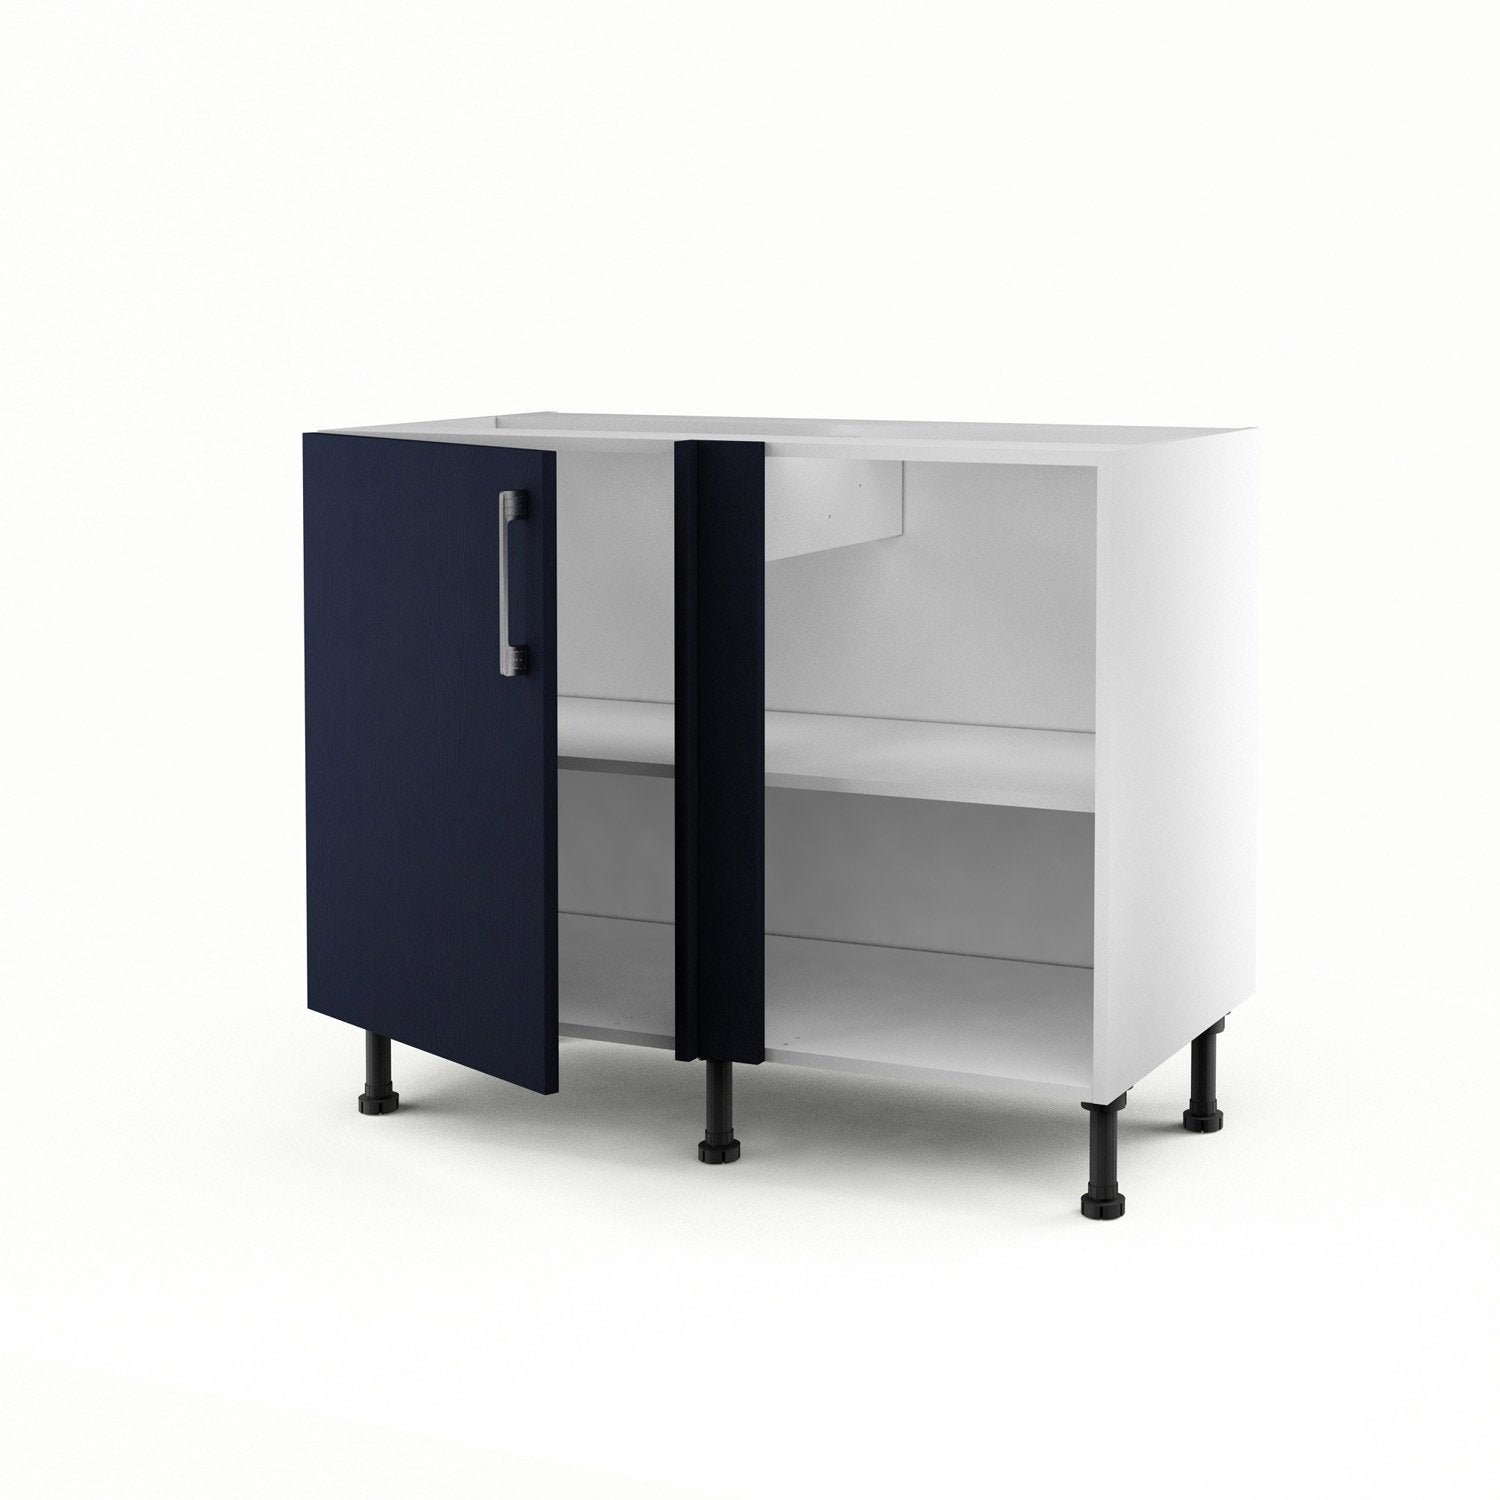 meuble de cuisine bas d 39 angle bleu 1 porte topaze x x cm leroy merlin. Black Bedroom Furniture Sets. Home Design Ideas